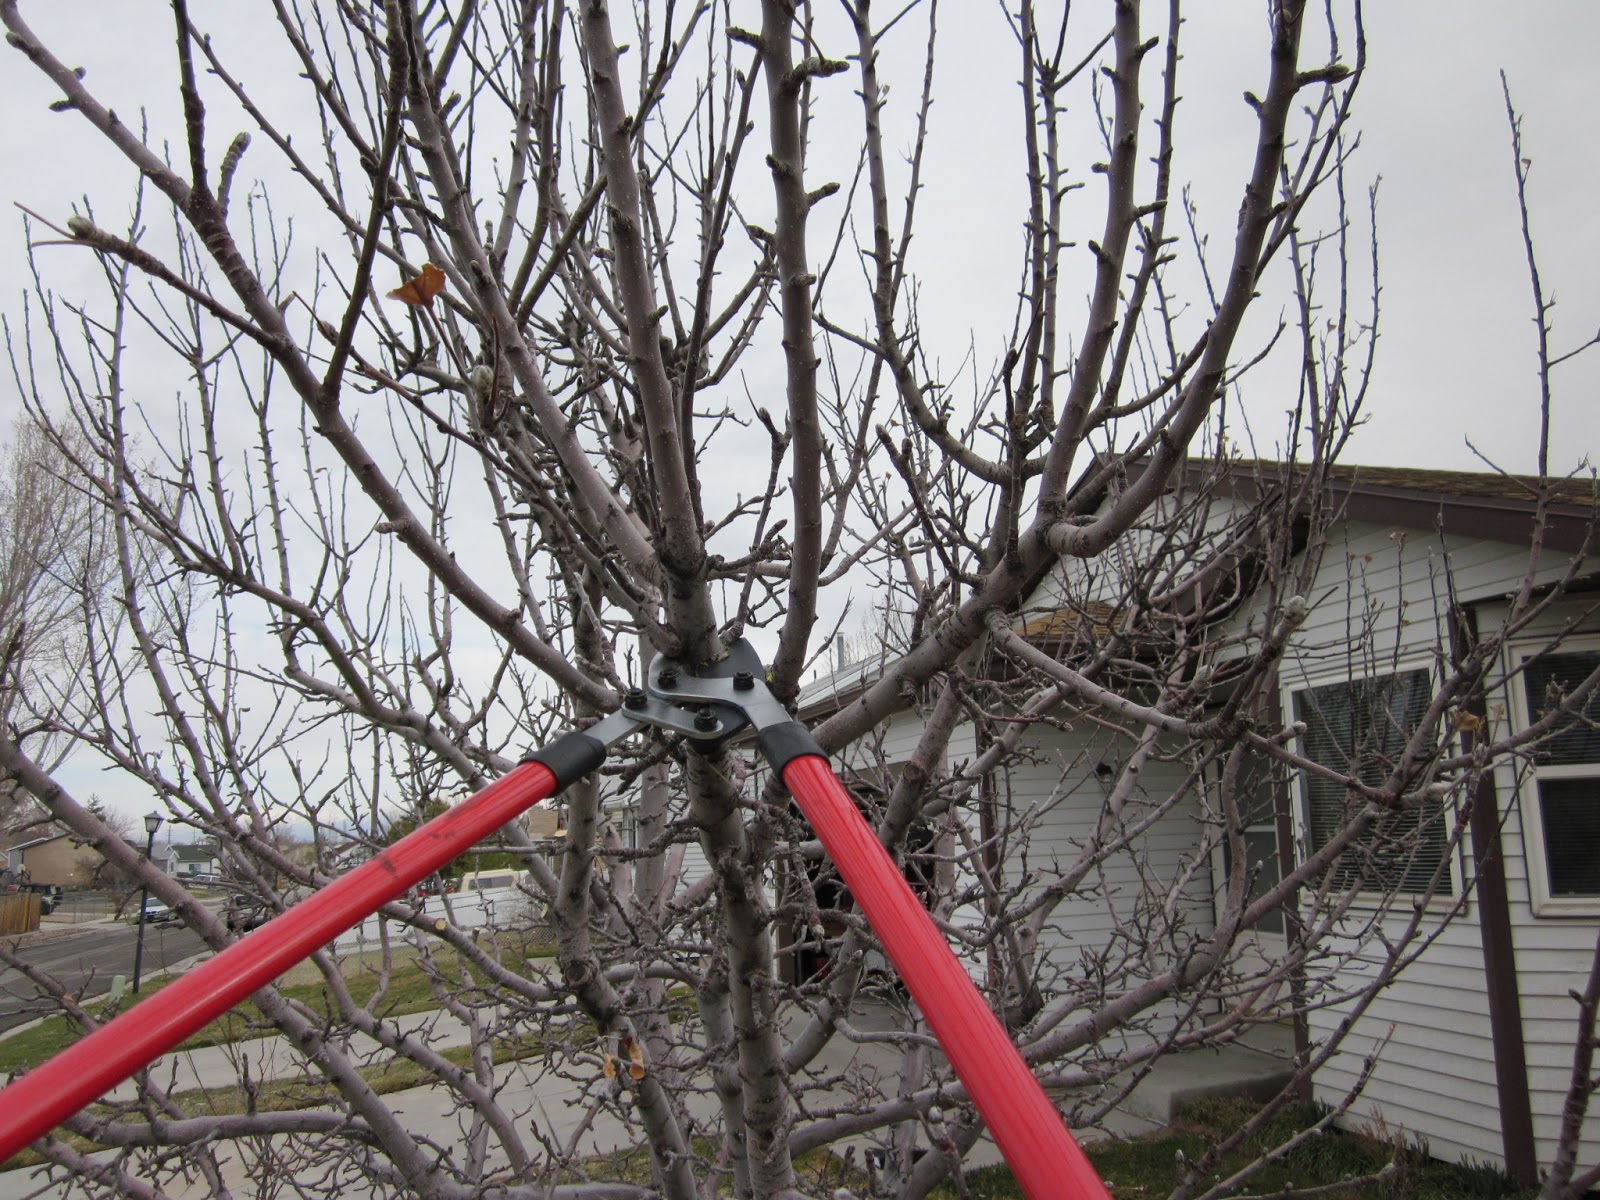 Fruit tree pruning at its best when is the best time to prune fruit trees - Spring trimming orchard trees healthy ...